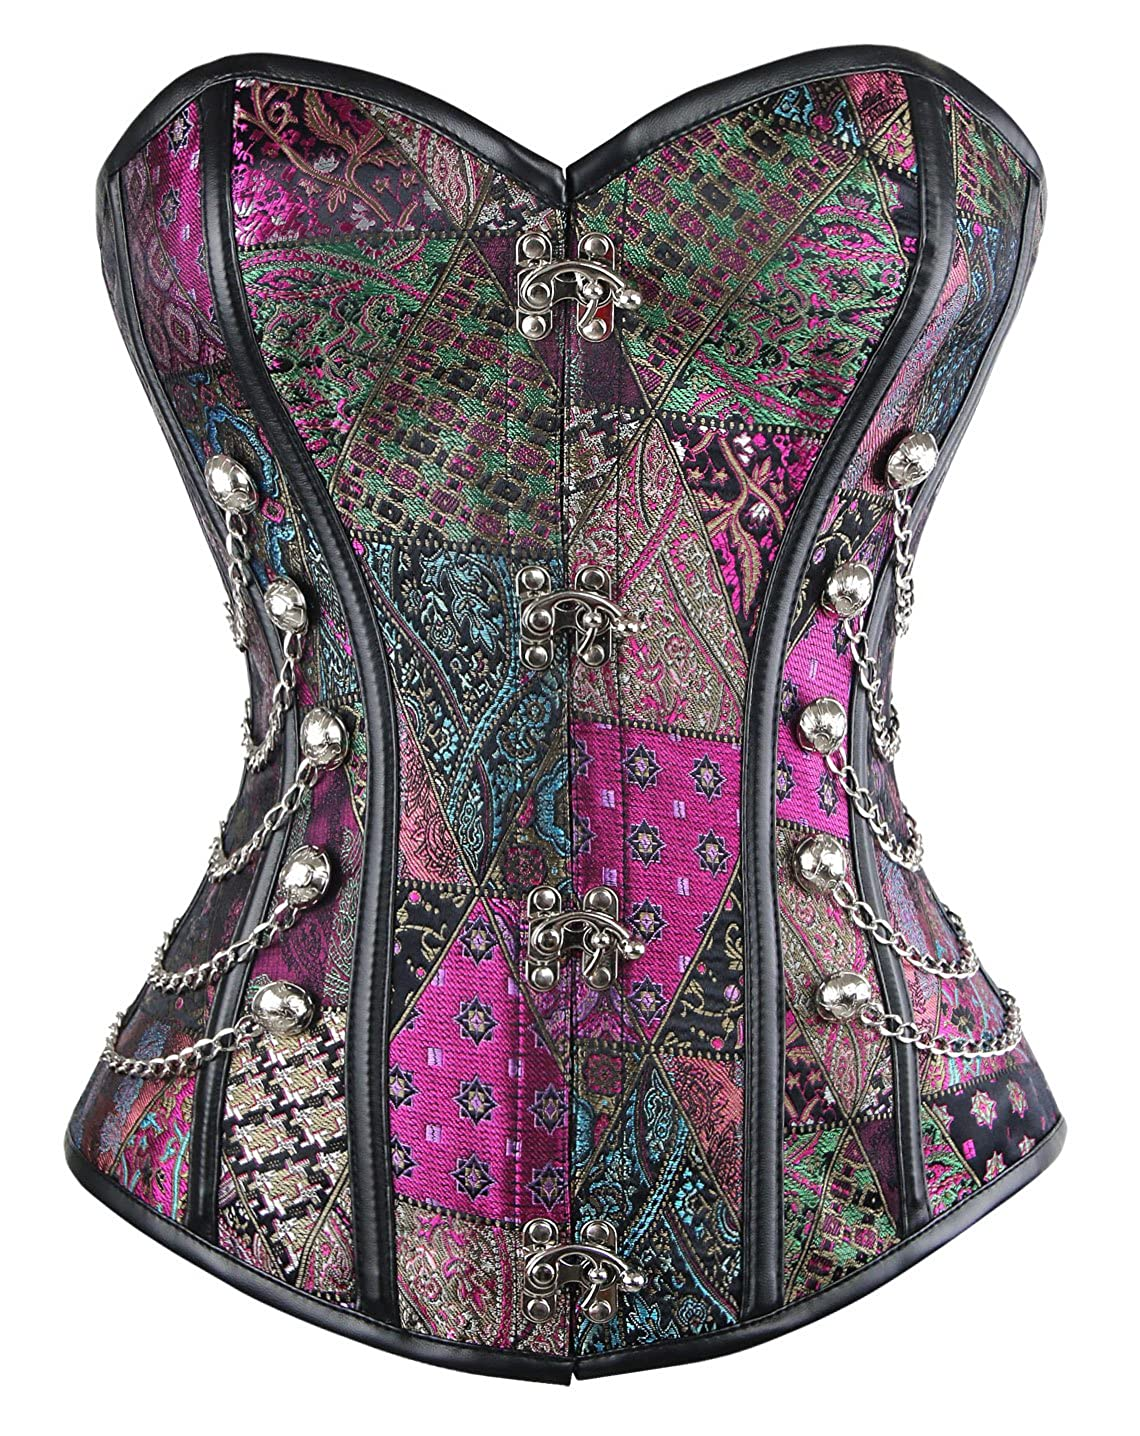 Steampunk Tops | Blouses, Shirts Charmian Womens Spiral Steel Boned Steampunk Gothic Bustier Corset with Chains $36.59 AT vintagedancer.com